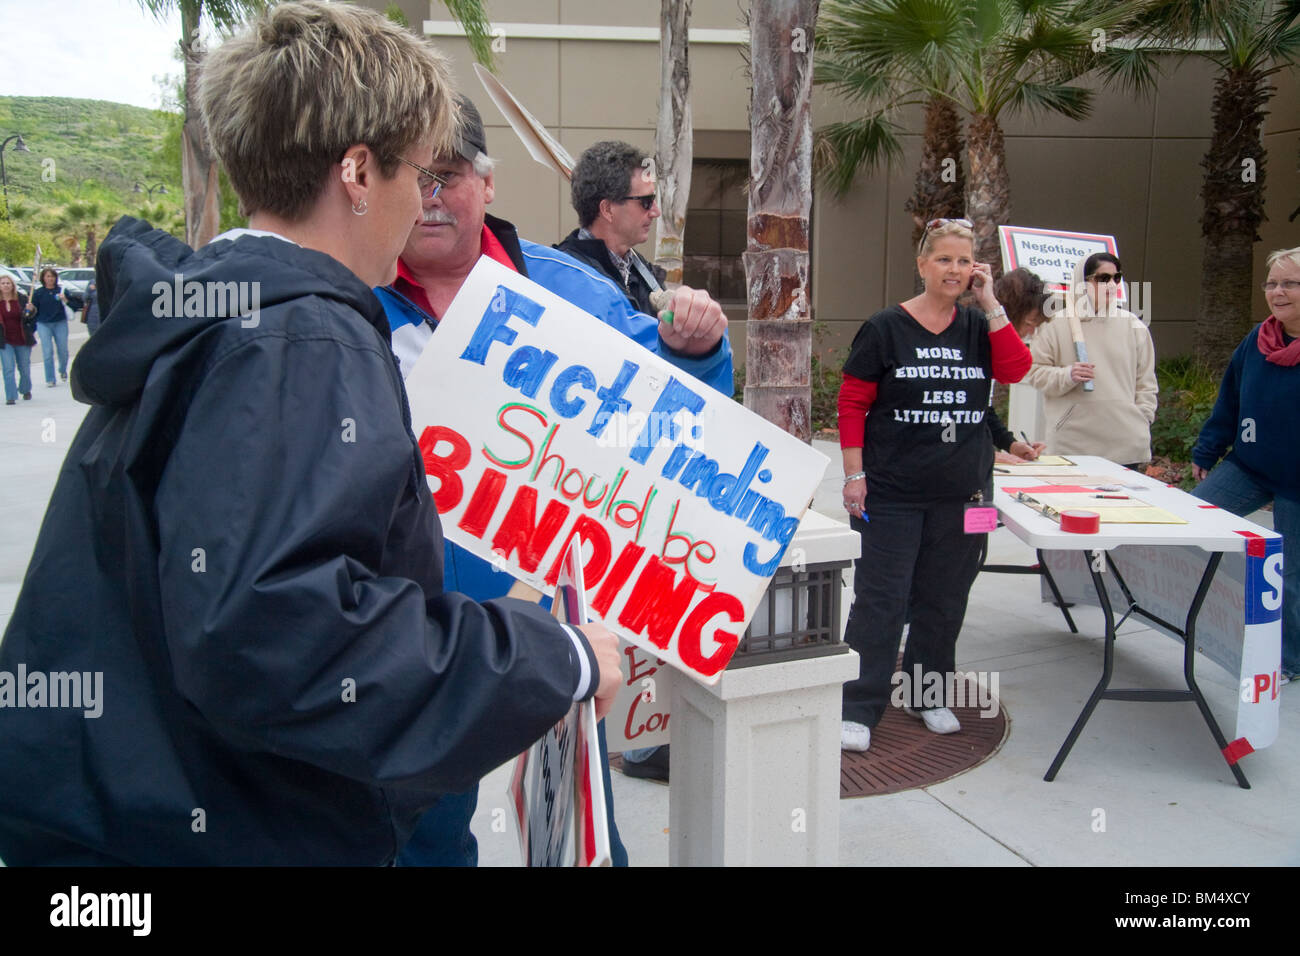 Carrying signs, protesting school teachers rally over proposed pay cuts in San Juan Capistrano, CA. Note T-shirt. - Stock Image